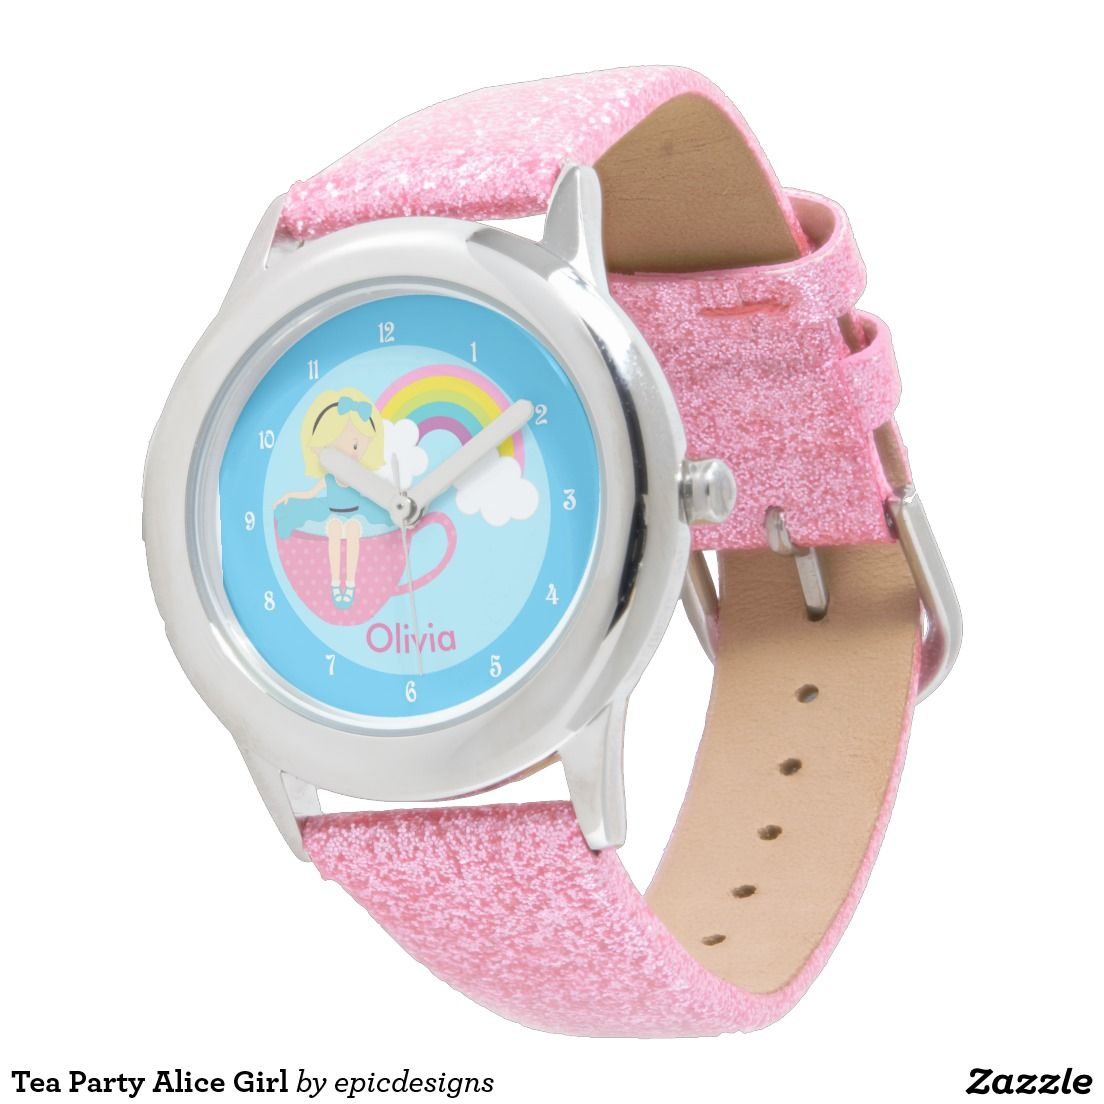 Tea Party Alice in Wonderland Girl Watch personalized with your child's name. Pretty rainbow on a cute blue sky. Great custom gift for a little girl. #aliceinwonderland